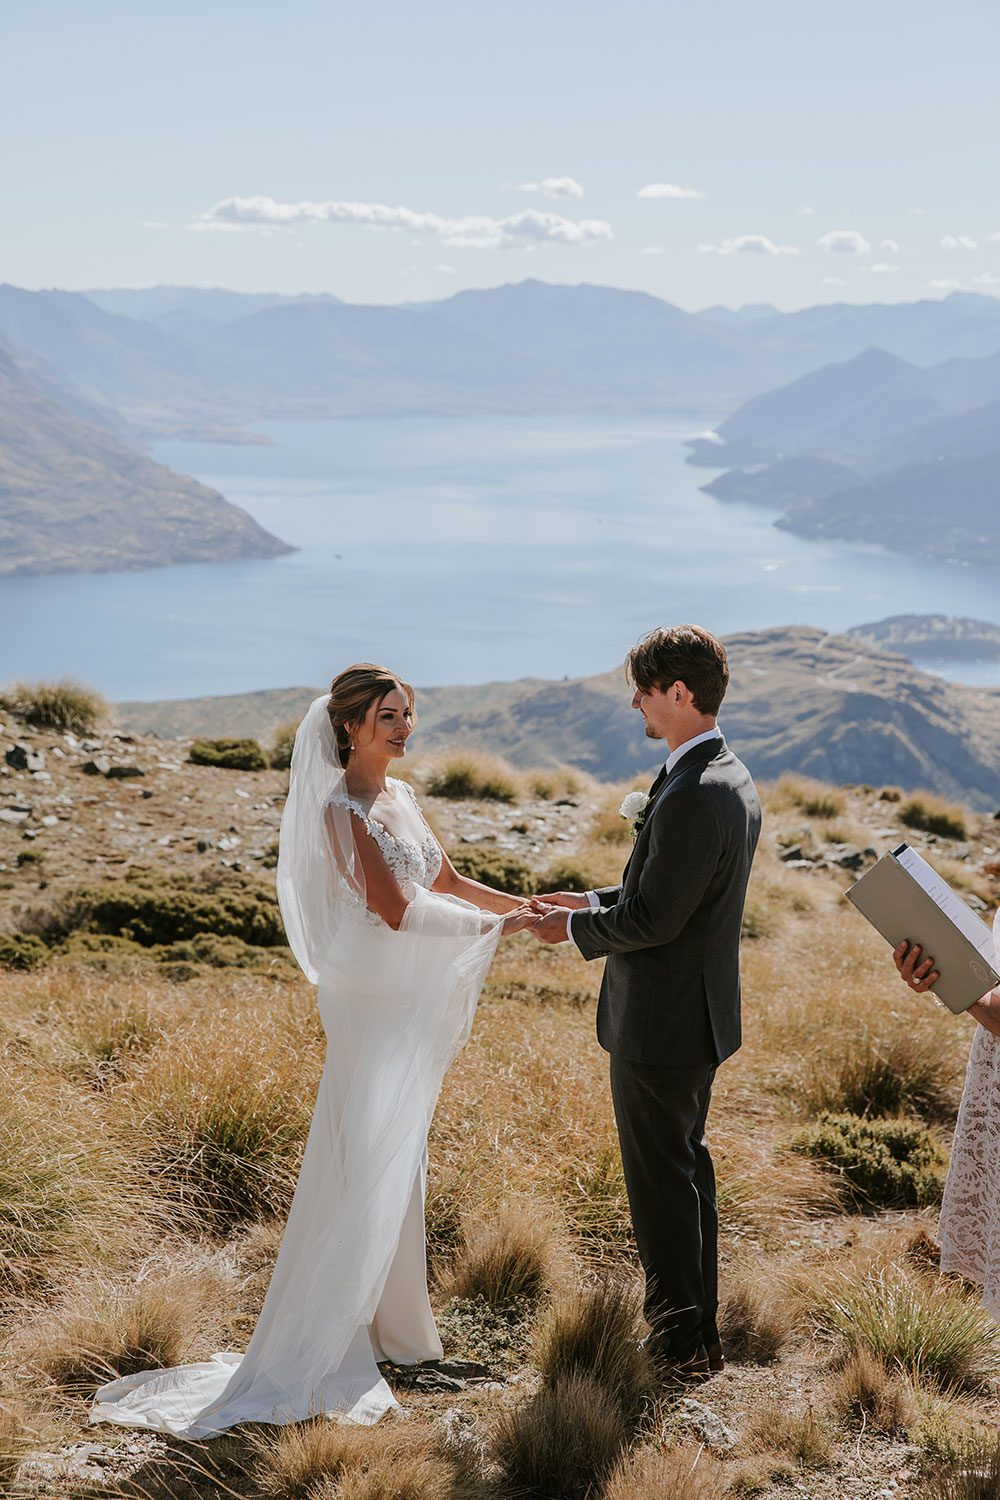 Bride wearing bespoke bridal gown with richly beaded lace over sheer tulle bodice and low back from Auckland wedding dress designer Vinka designs - saying vows view of lake